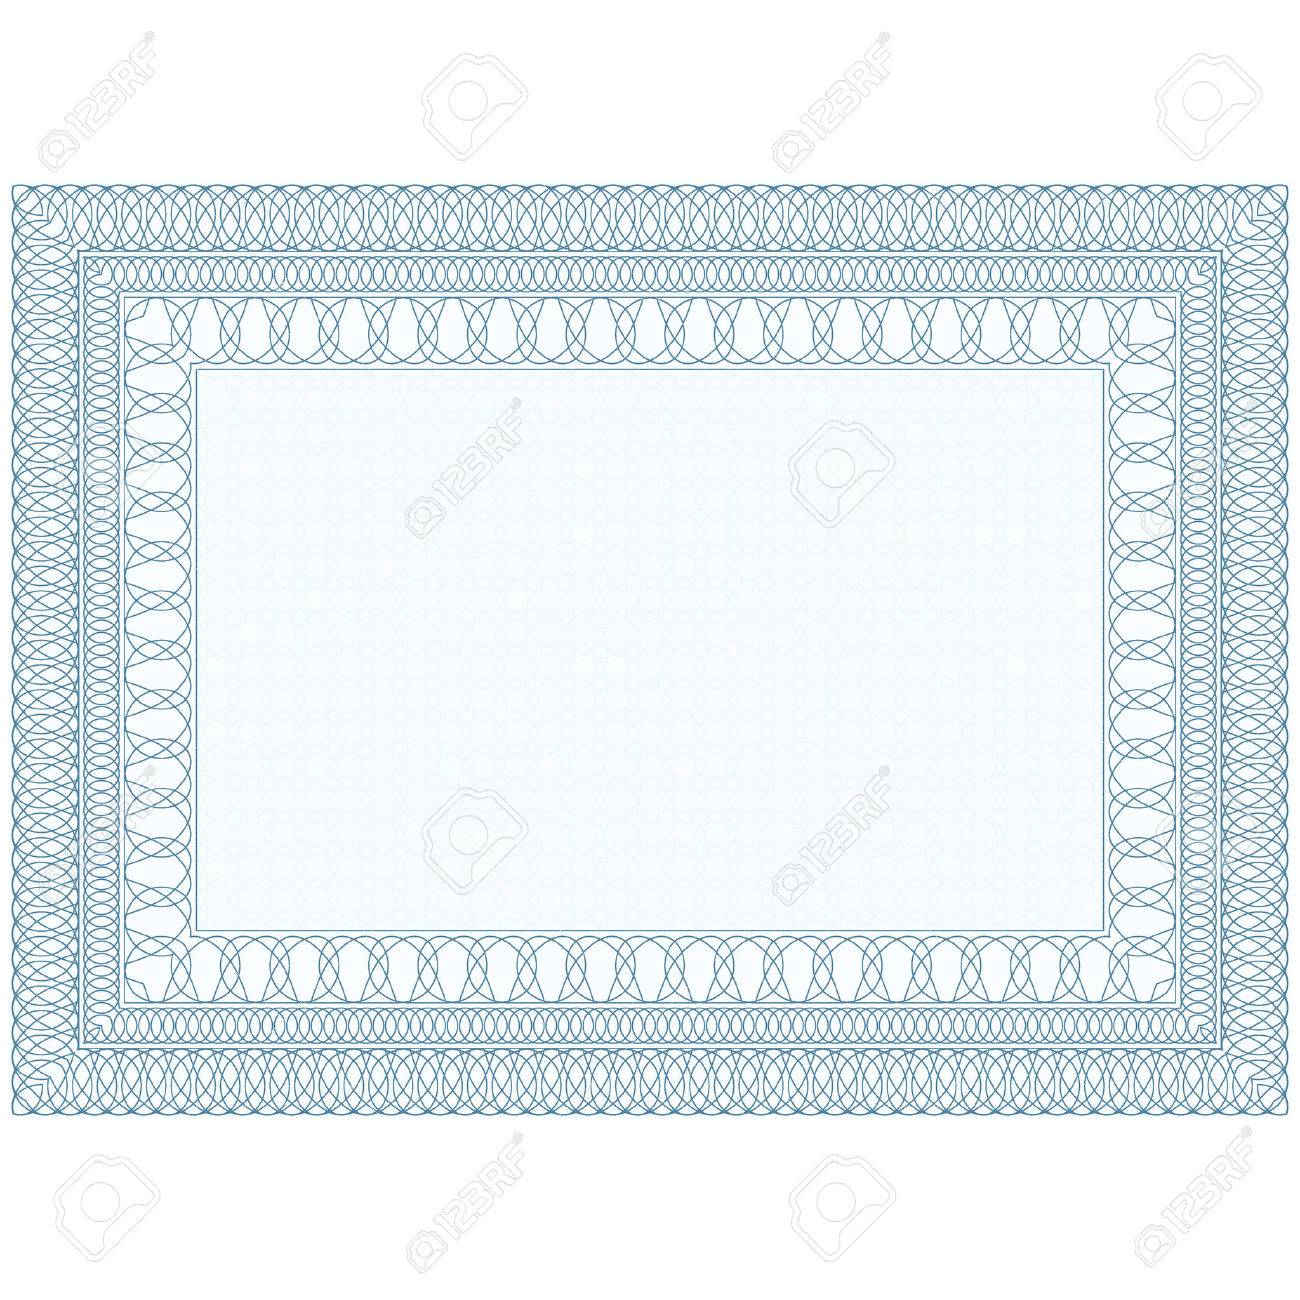 The Empty Form For The Certificate, Guilloche Border Royalty Free ...